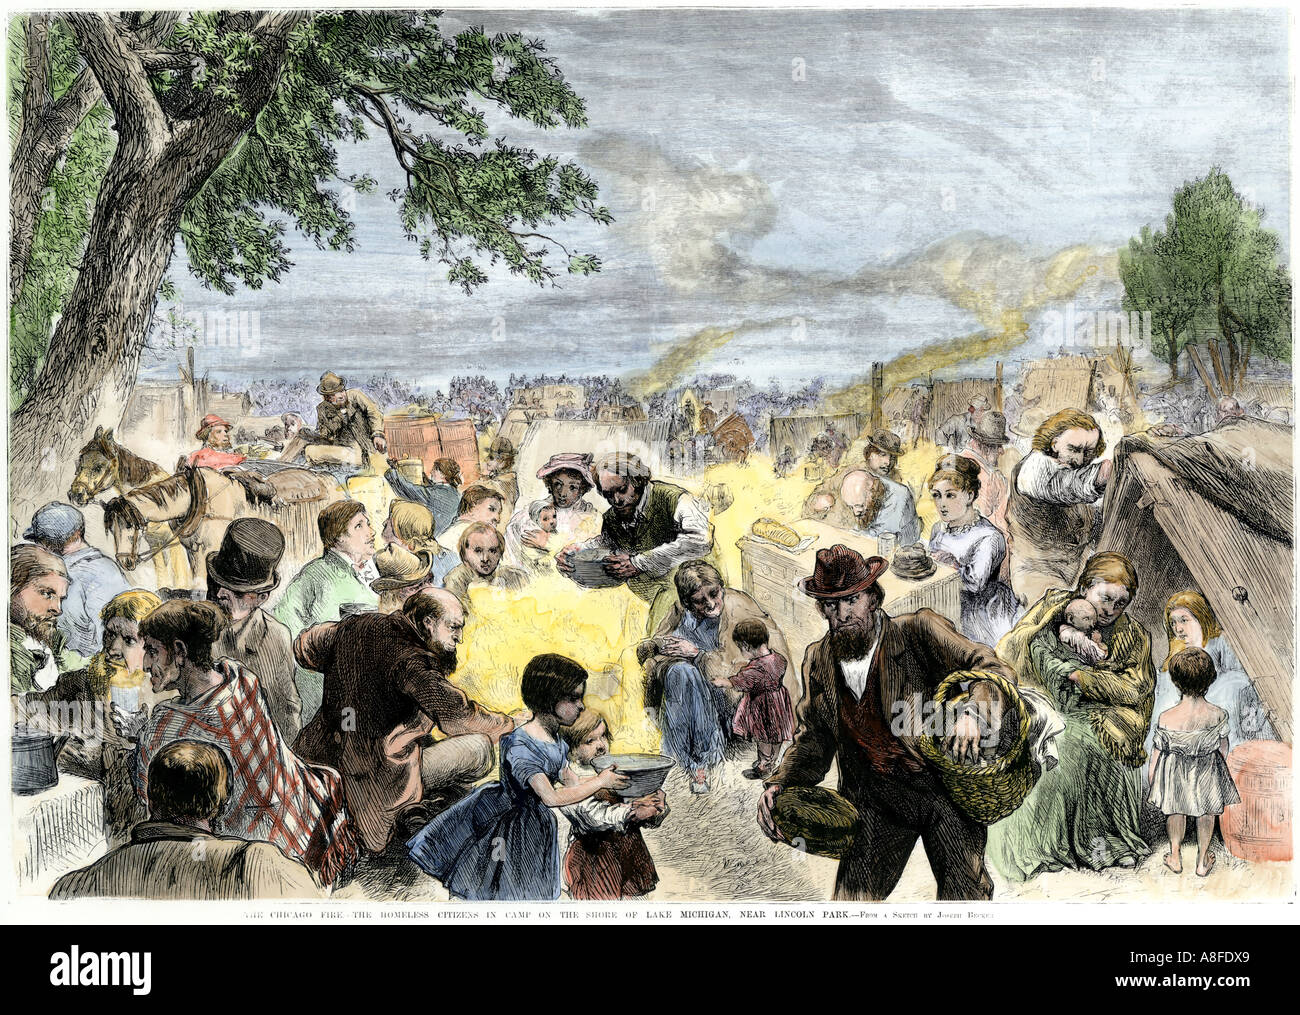 Camp for Chicago Fire victims on Lake Michigan shore near Lincoln Park 1871. Hand-colored woodcut - Stock Image